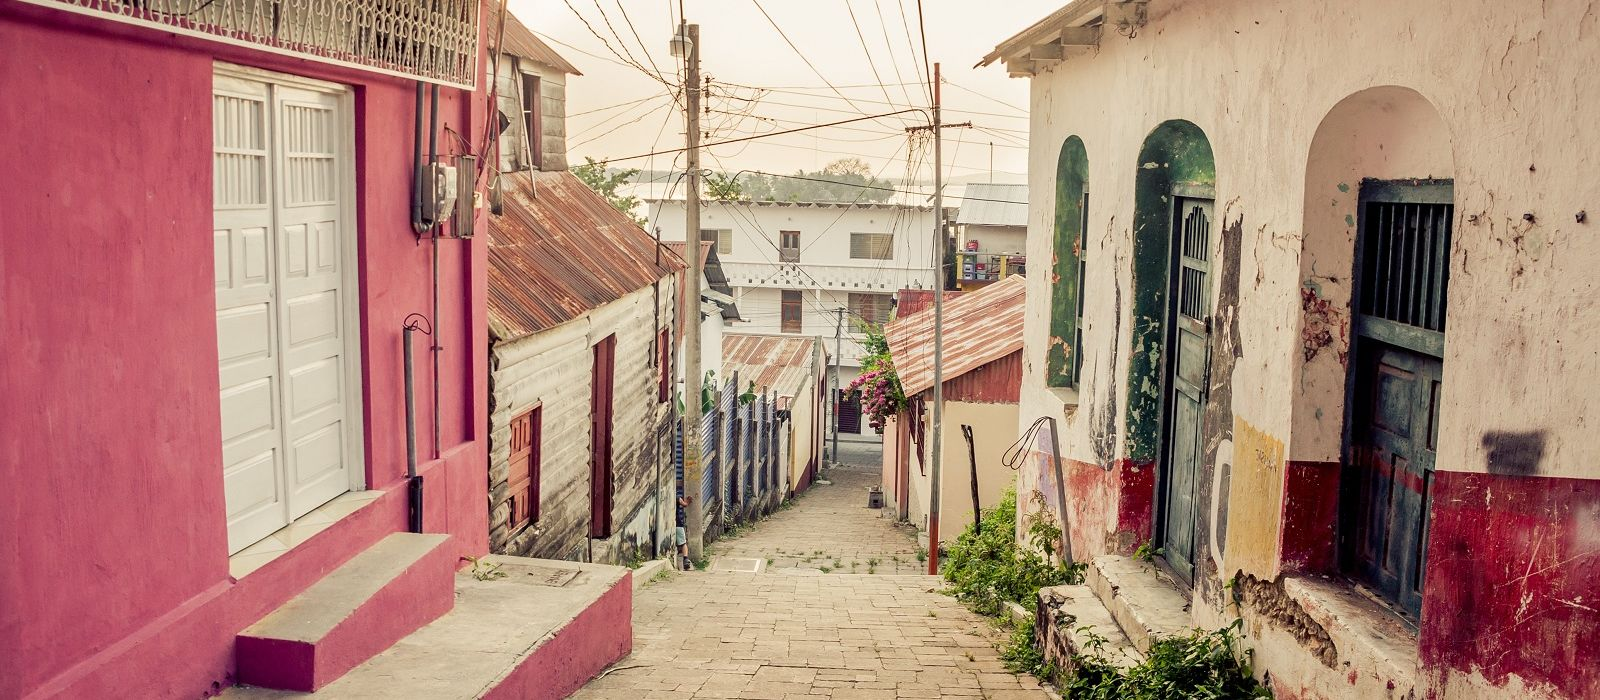 History of Costa Rica - Colorful streets tell interesting stories